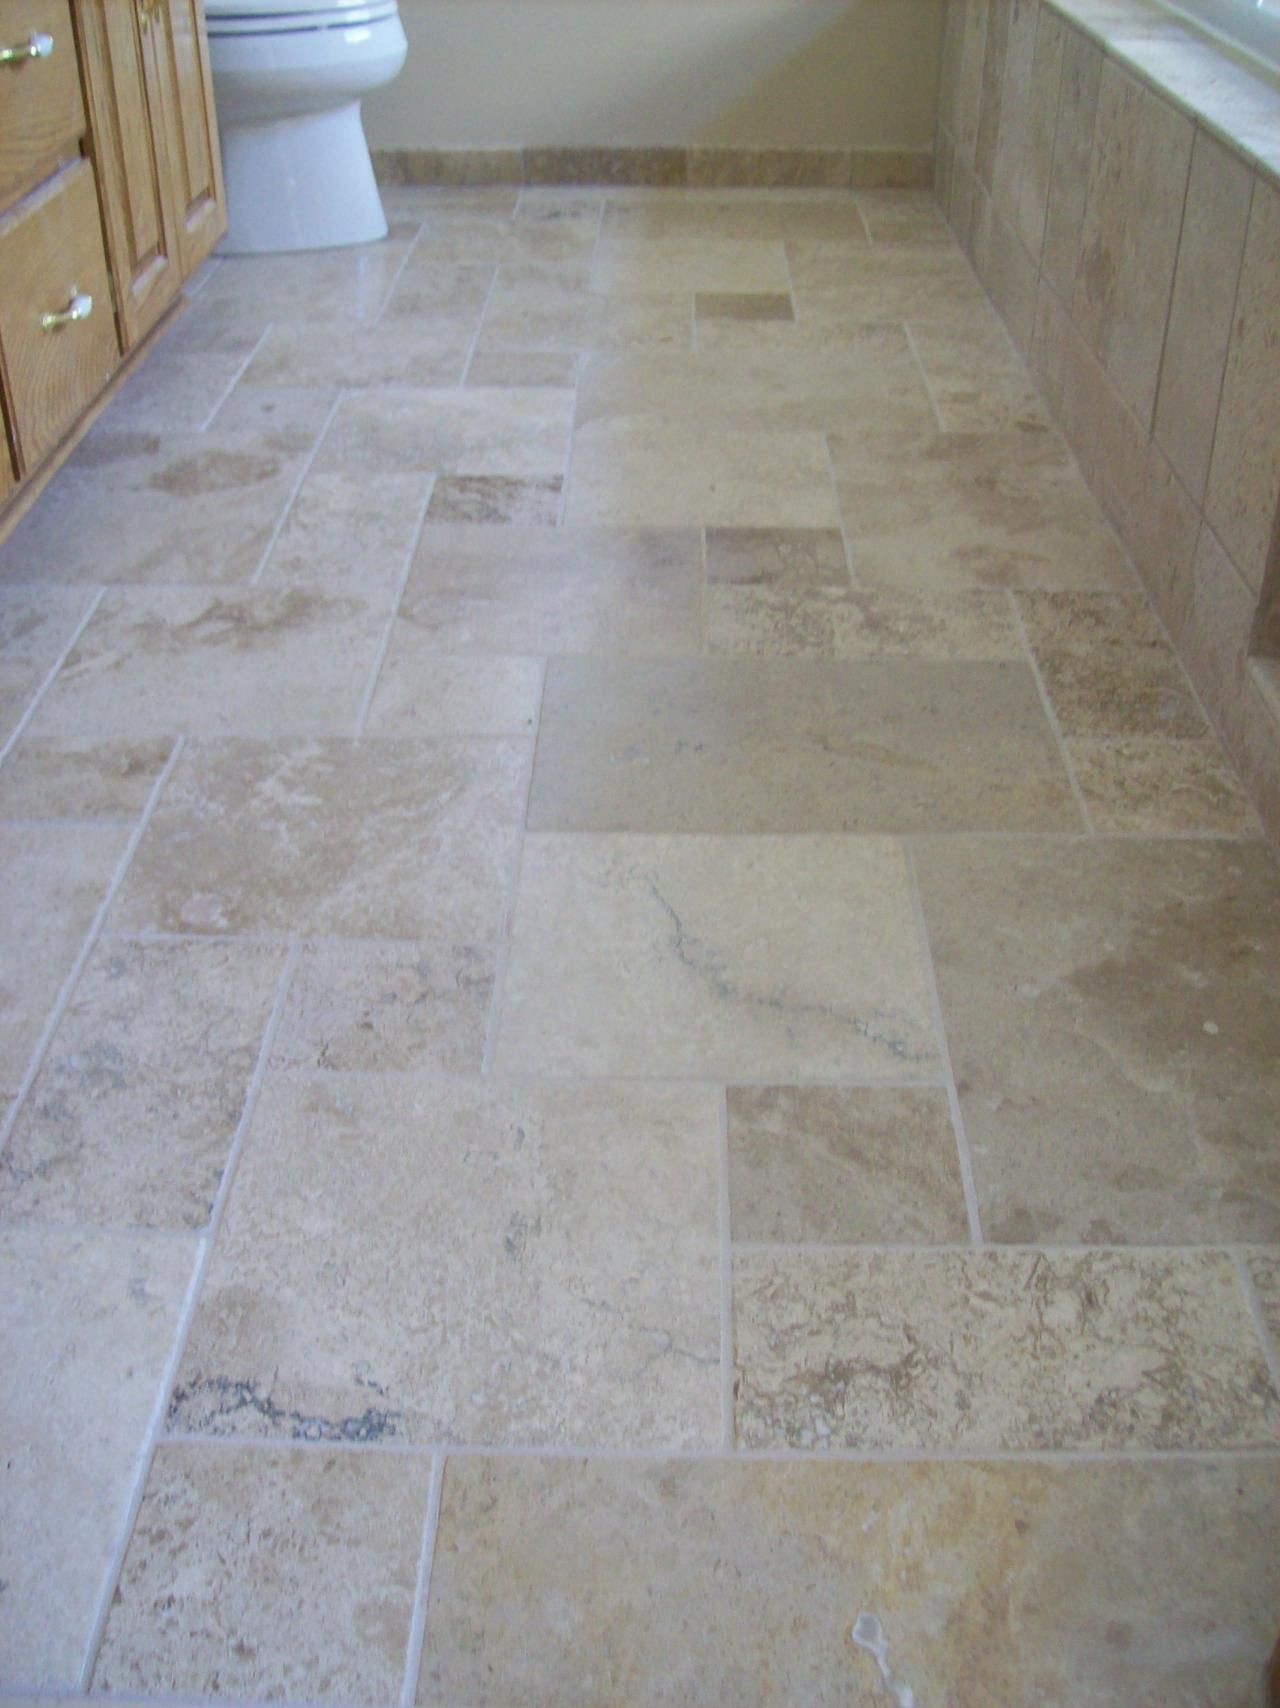 Travertine Natural Stone Tile In The Versaille Pattern On The Floor